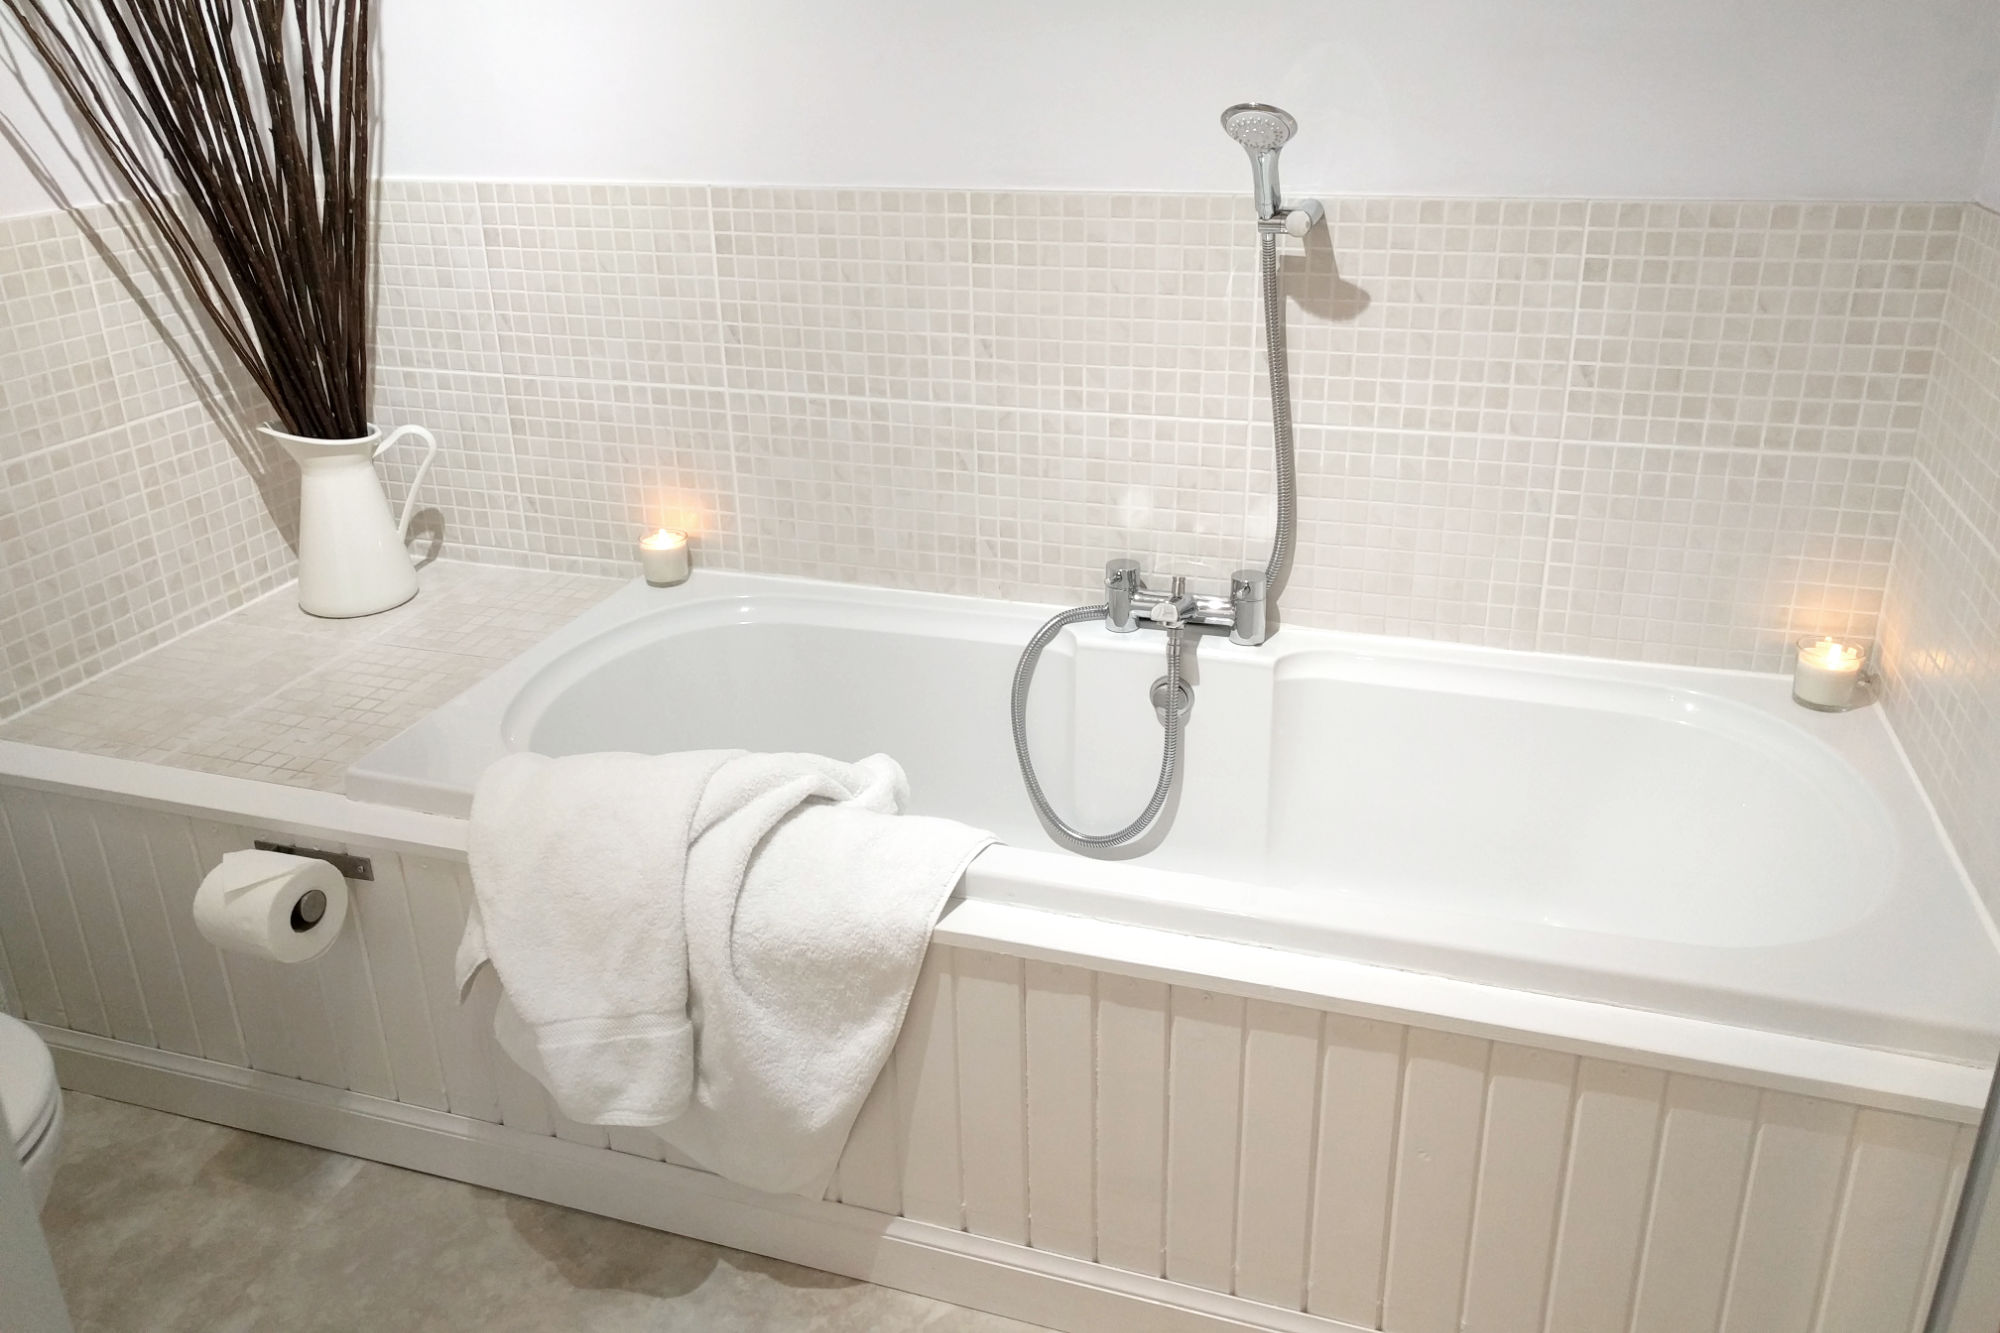 Main bathroom bath tub.